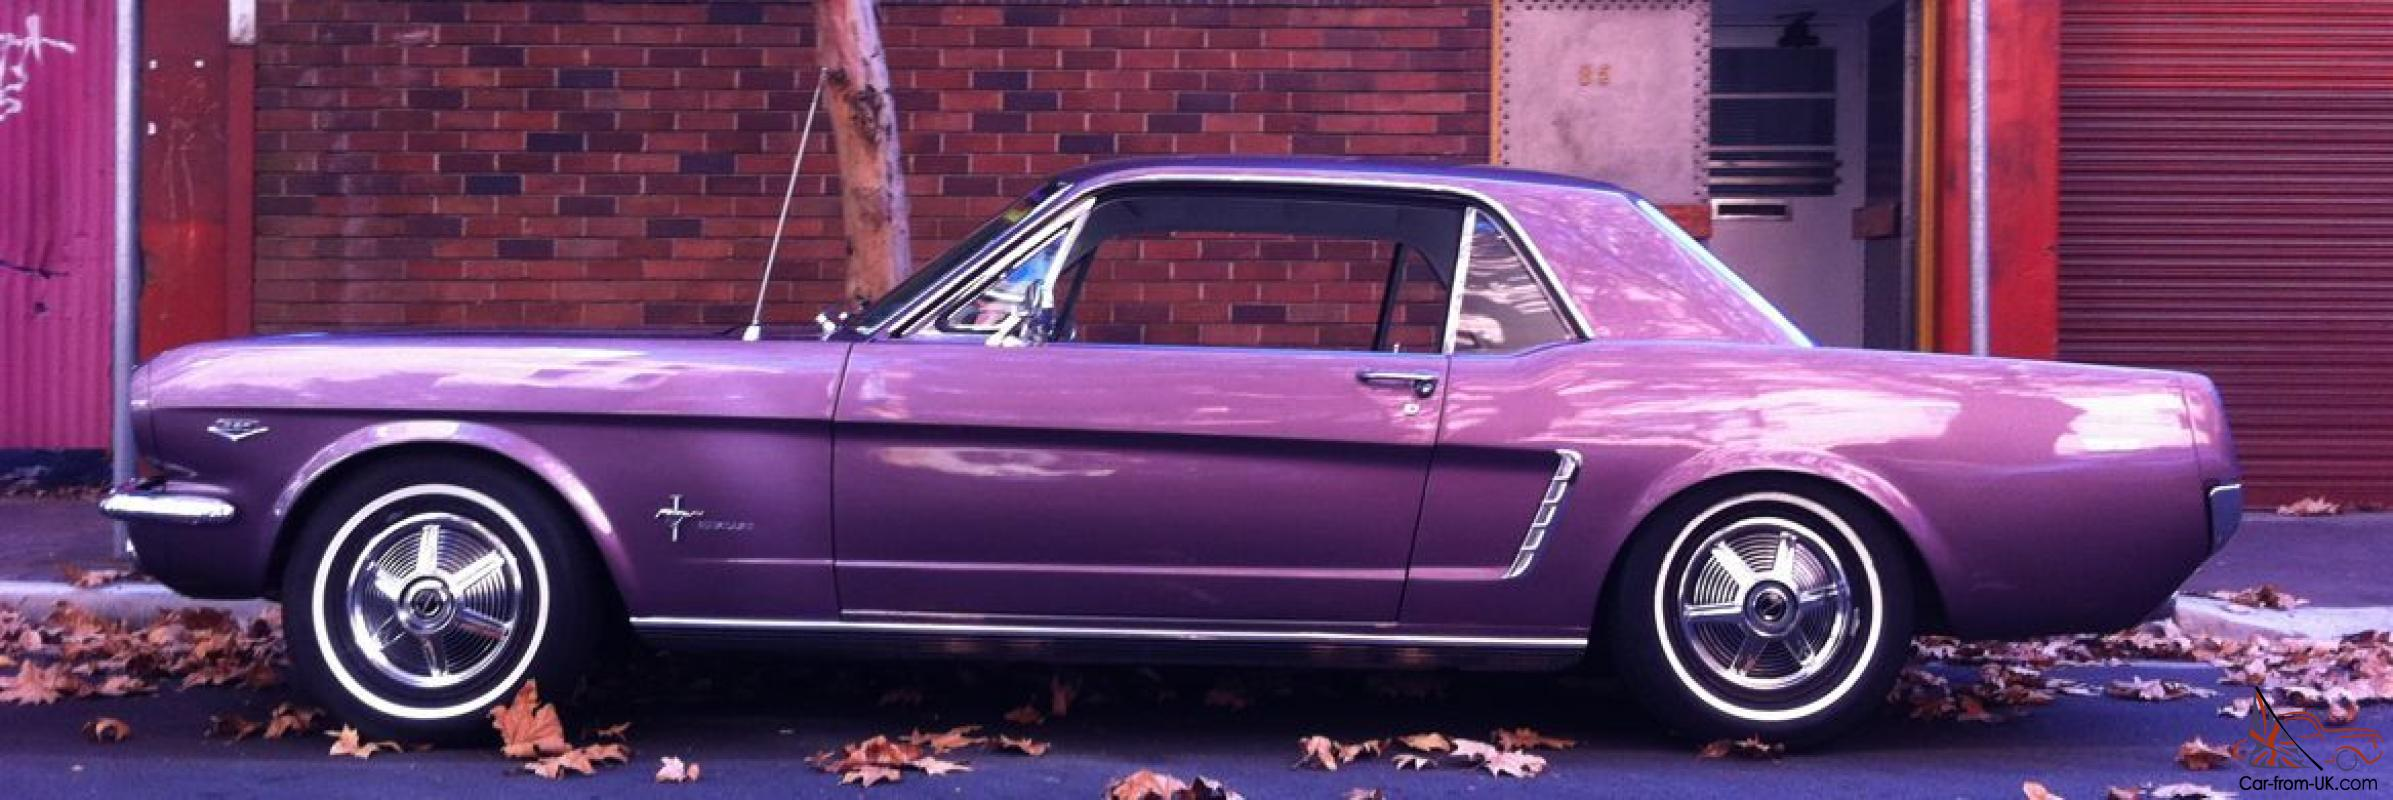 1964 1 2 ford mustang springtime violet coupe in nsw. Black Bedroom Furniture Sets. Home Design Ideas